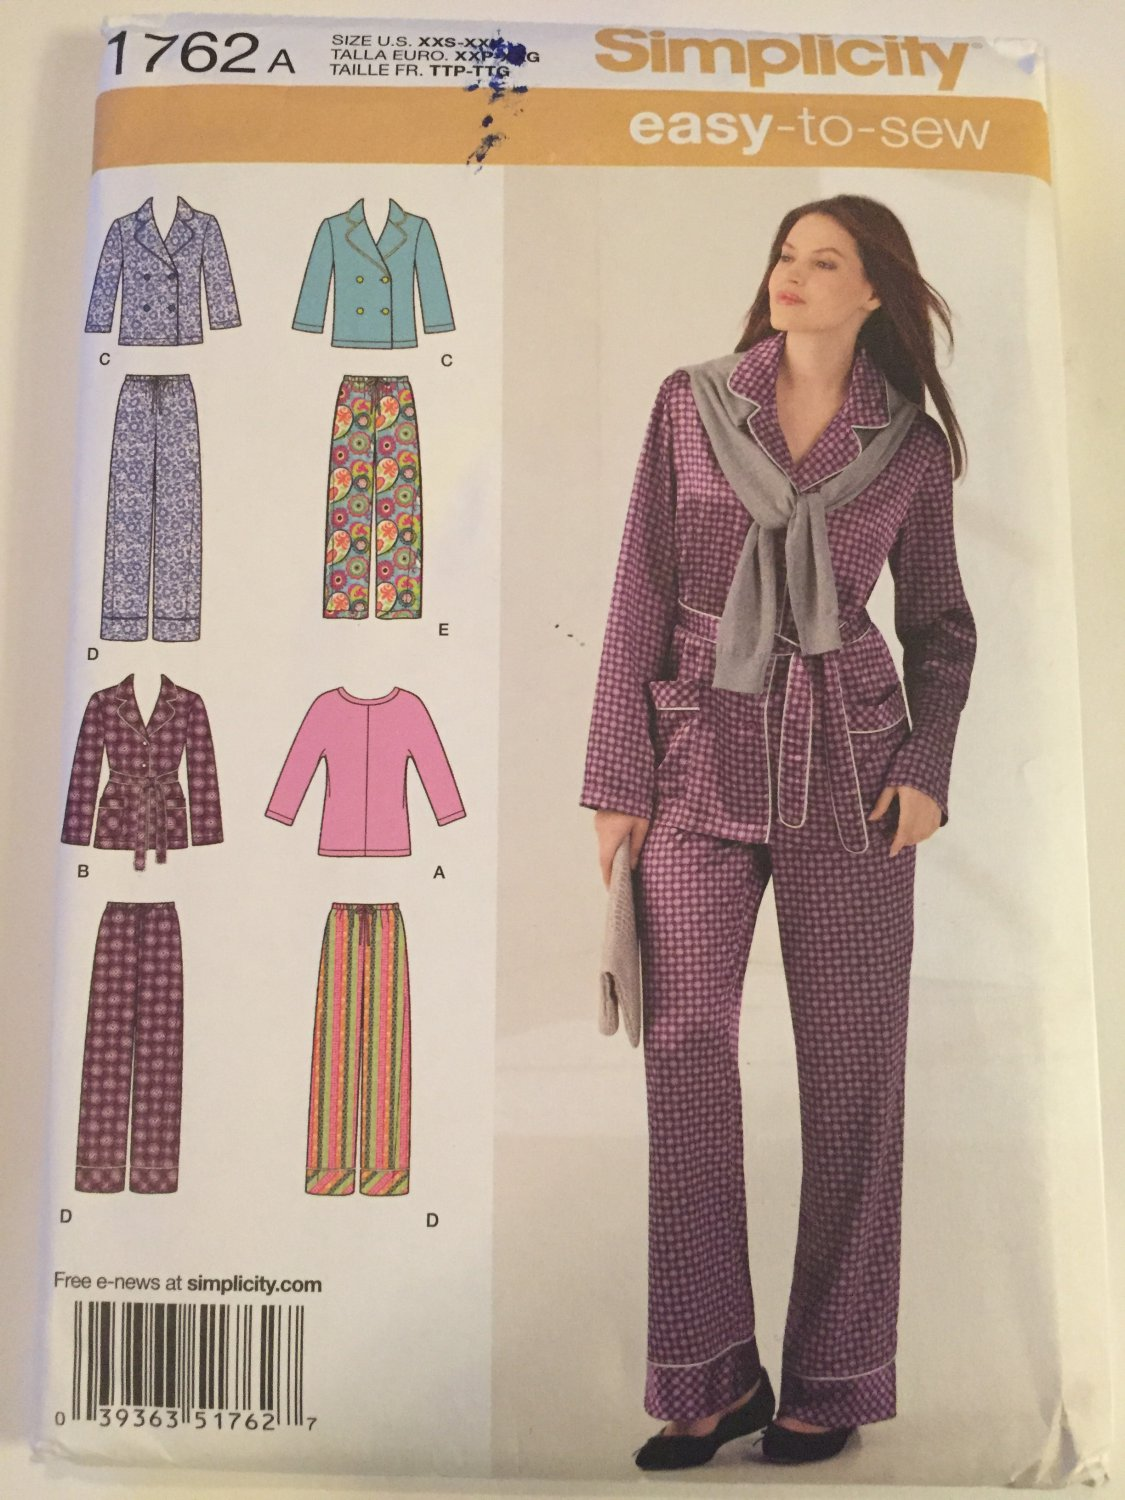 Simplicity 1762, Size 4�26 Pajama Top Knit Top Pajama Pants Two Lengths Sewing Pattern